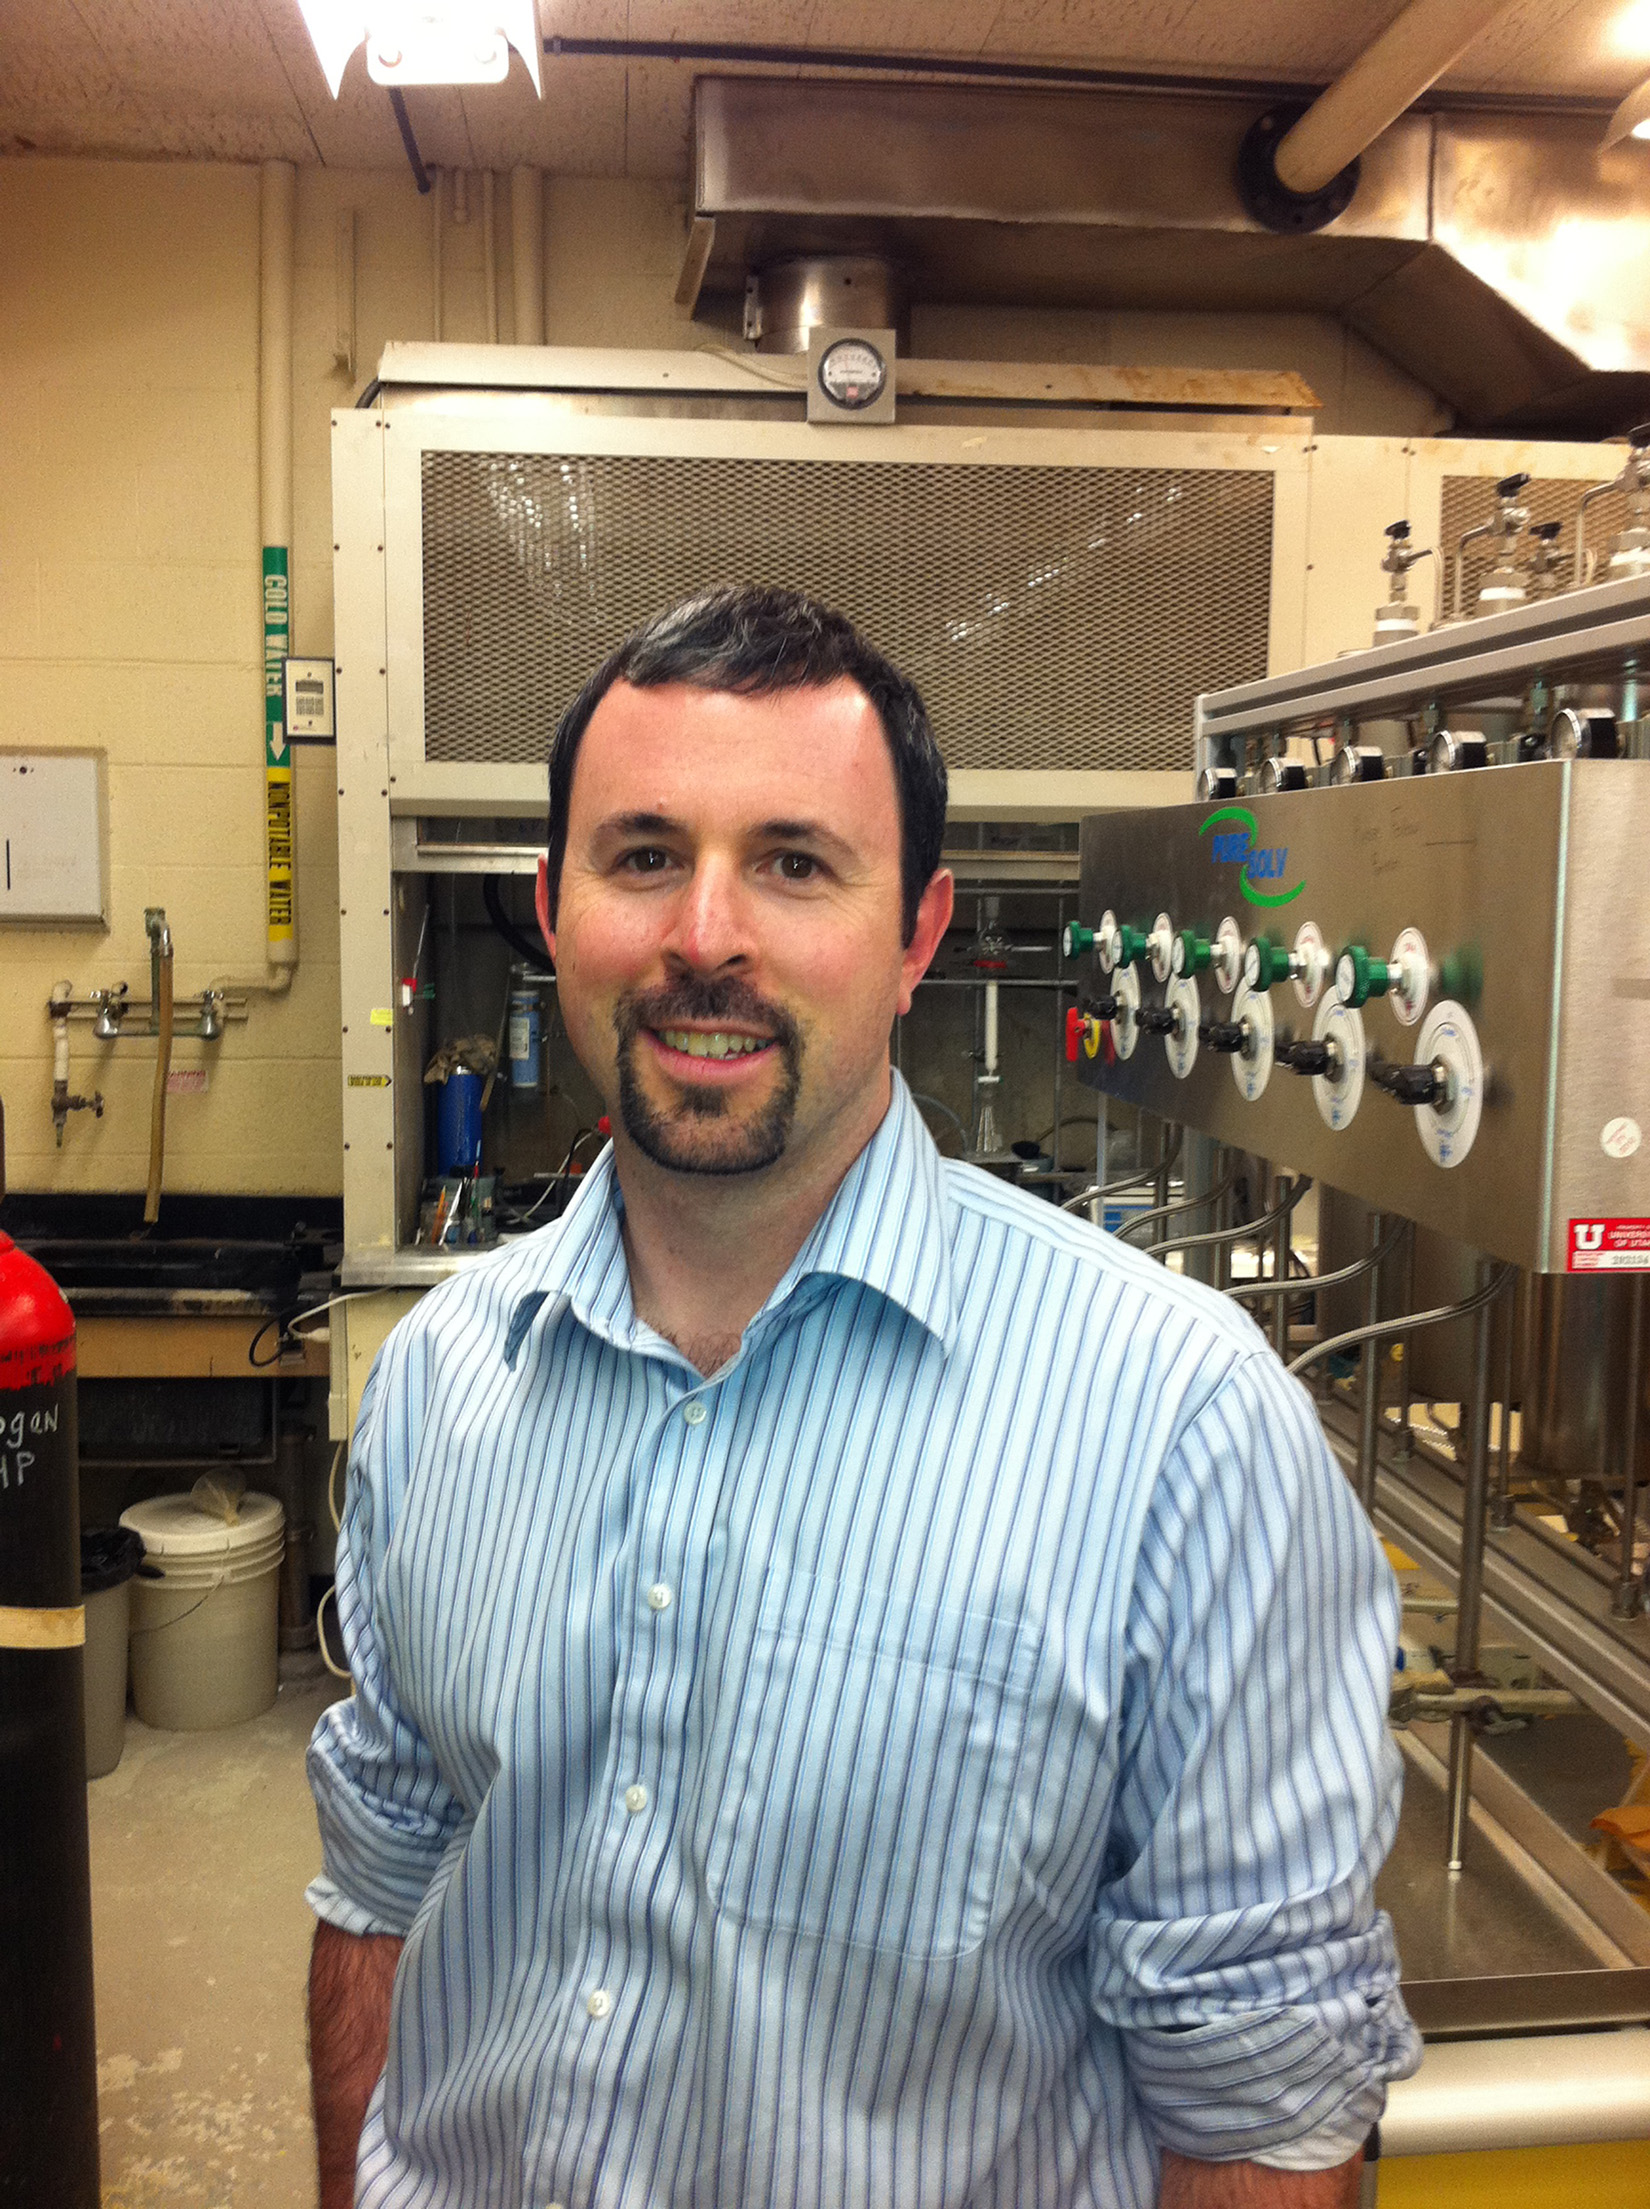 University of Utah chemistry Professor Matt Sigman (shown here) and graduate student Kaid Harper have published a study in the journal Science showing how they developed a new technique for designing and testing catalysts, which are chemicals used to speed chemical reactions crucial for energy production, chemical manufacturing and many other industrial processes.